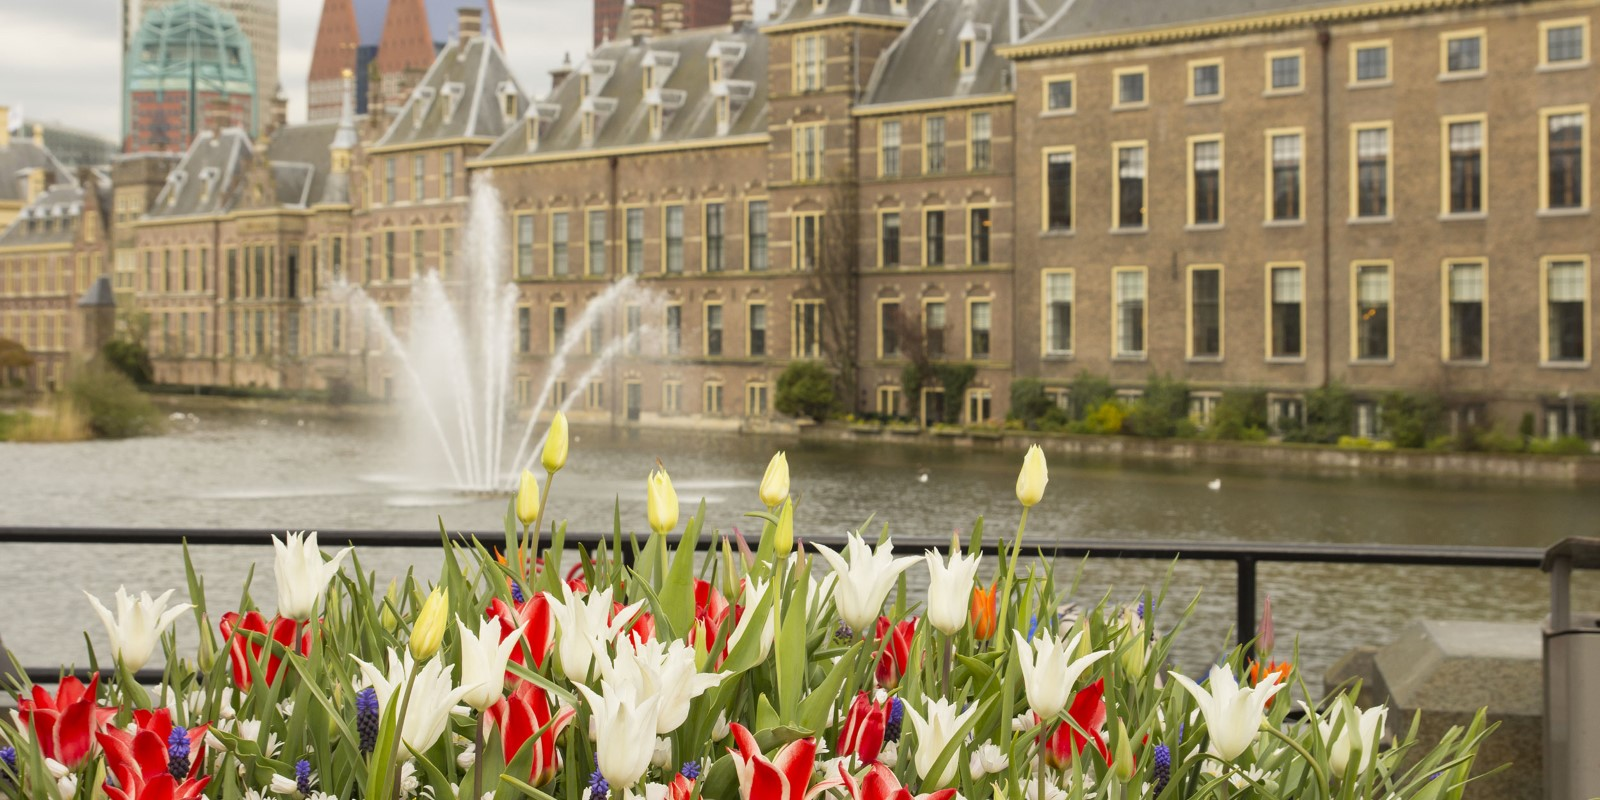 Carlos-Amarillo-Shutterstock_Guided-tour-The-Hague_299631029_2500x1250.jpg